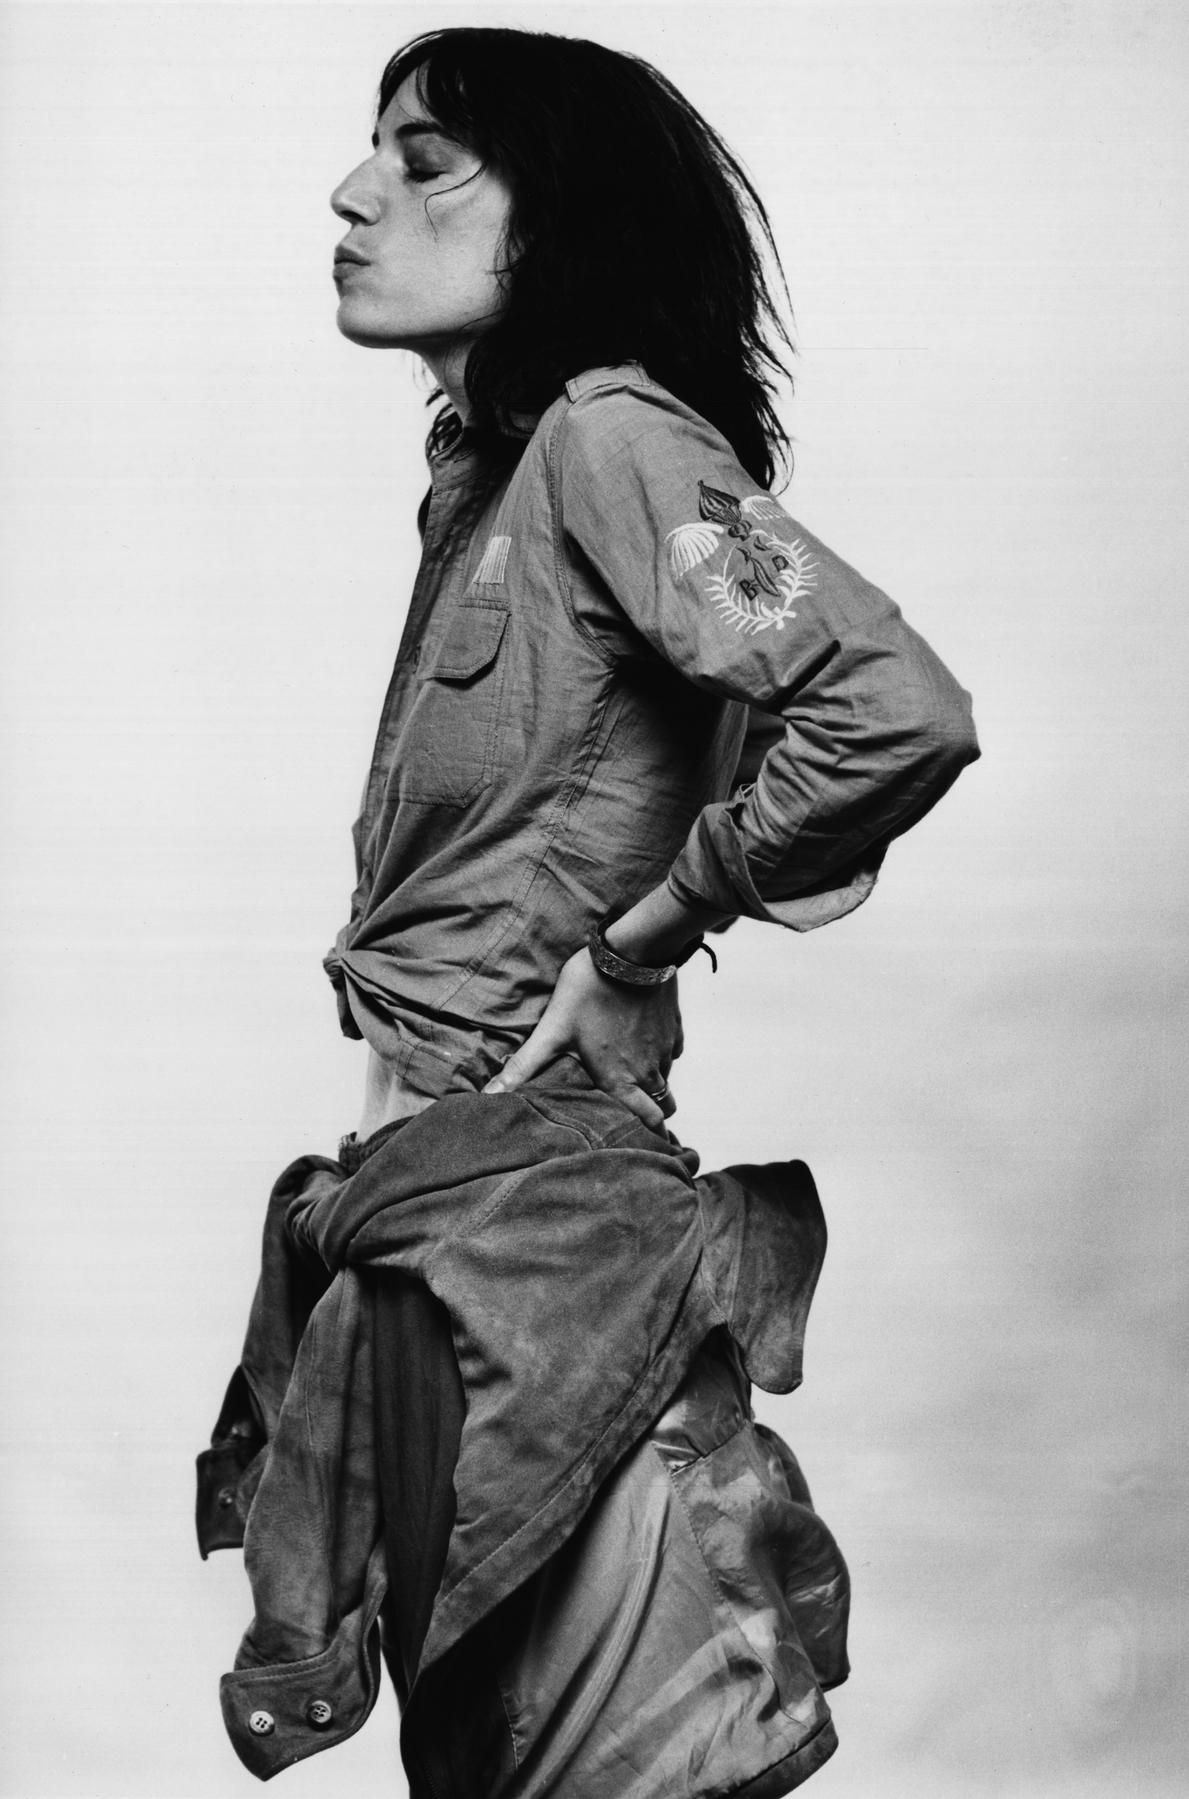 Patti Smith: Godmother of punk